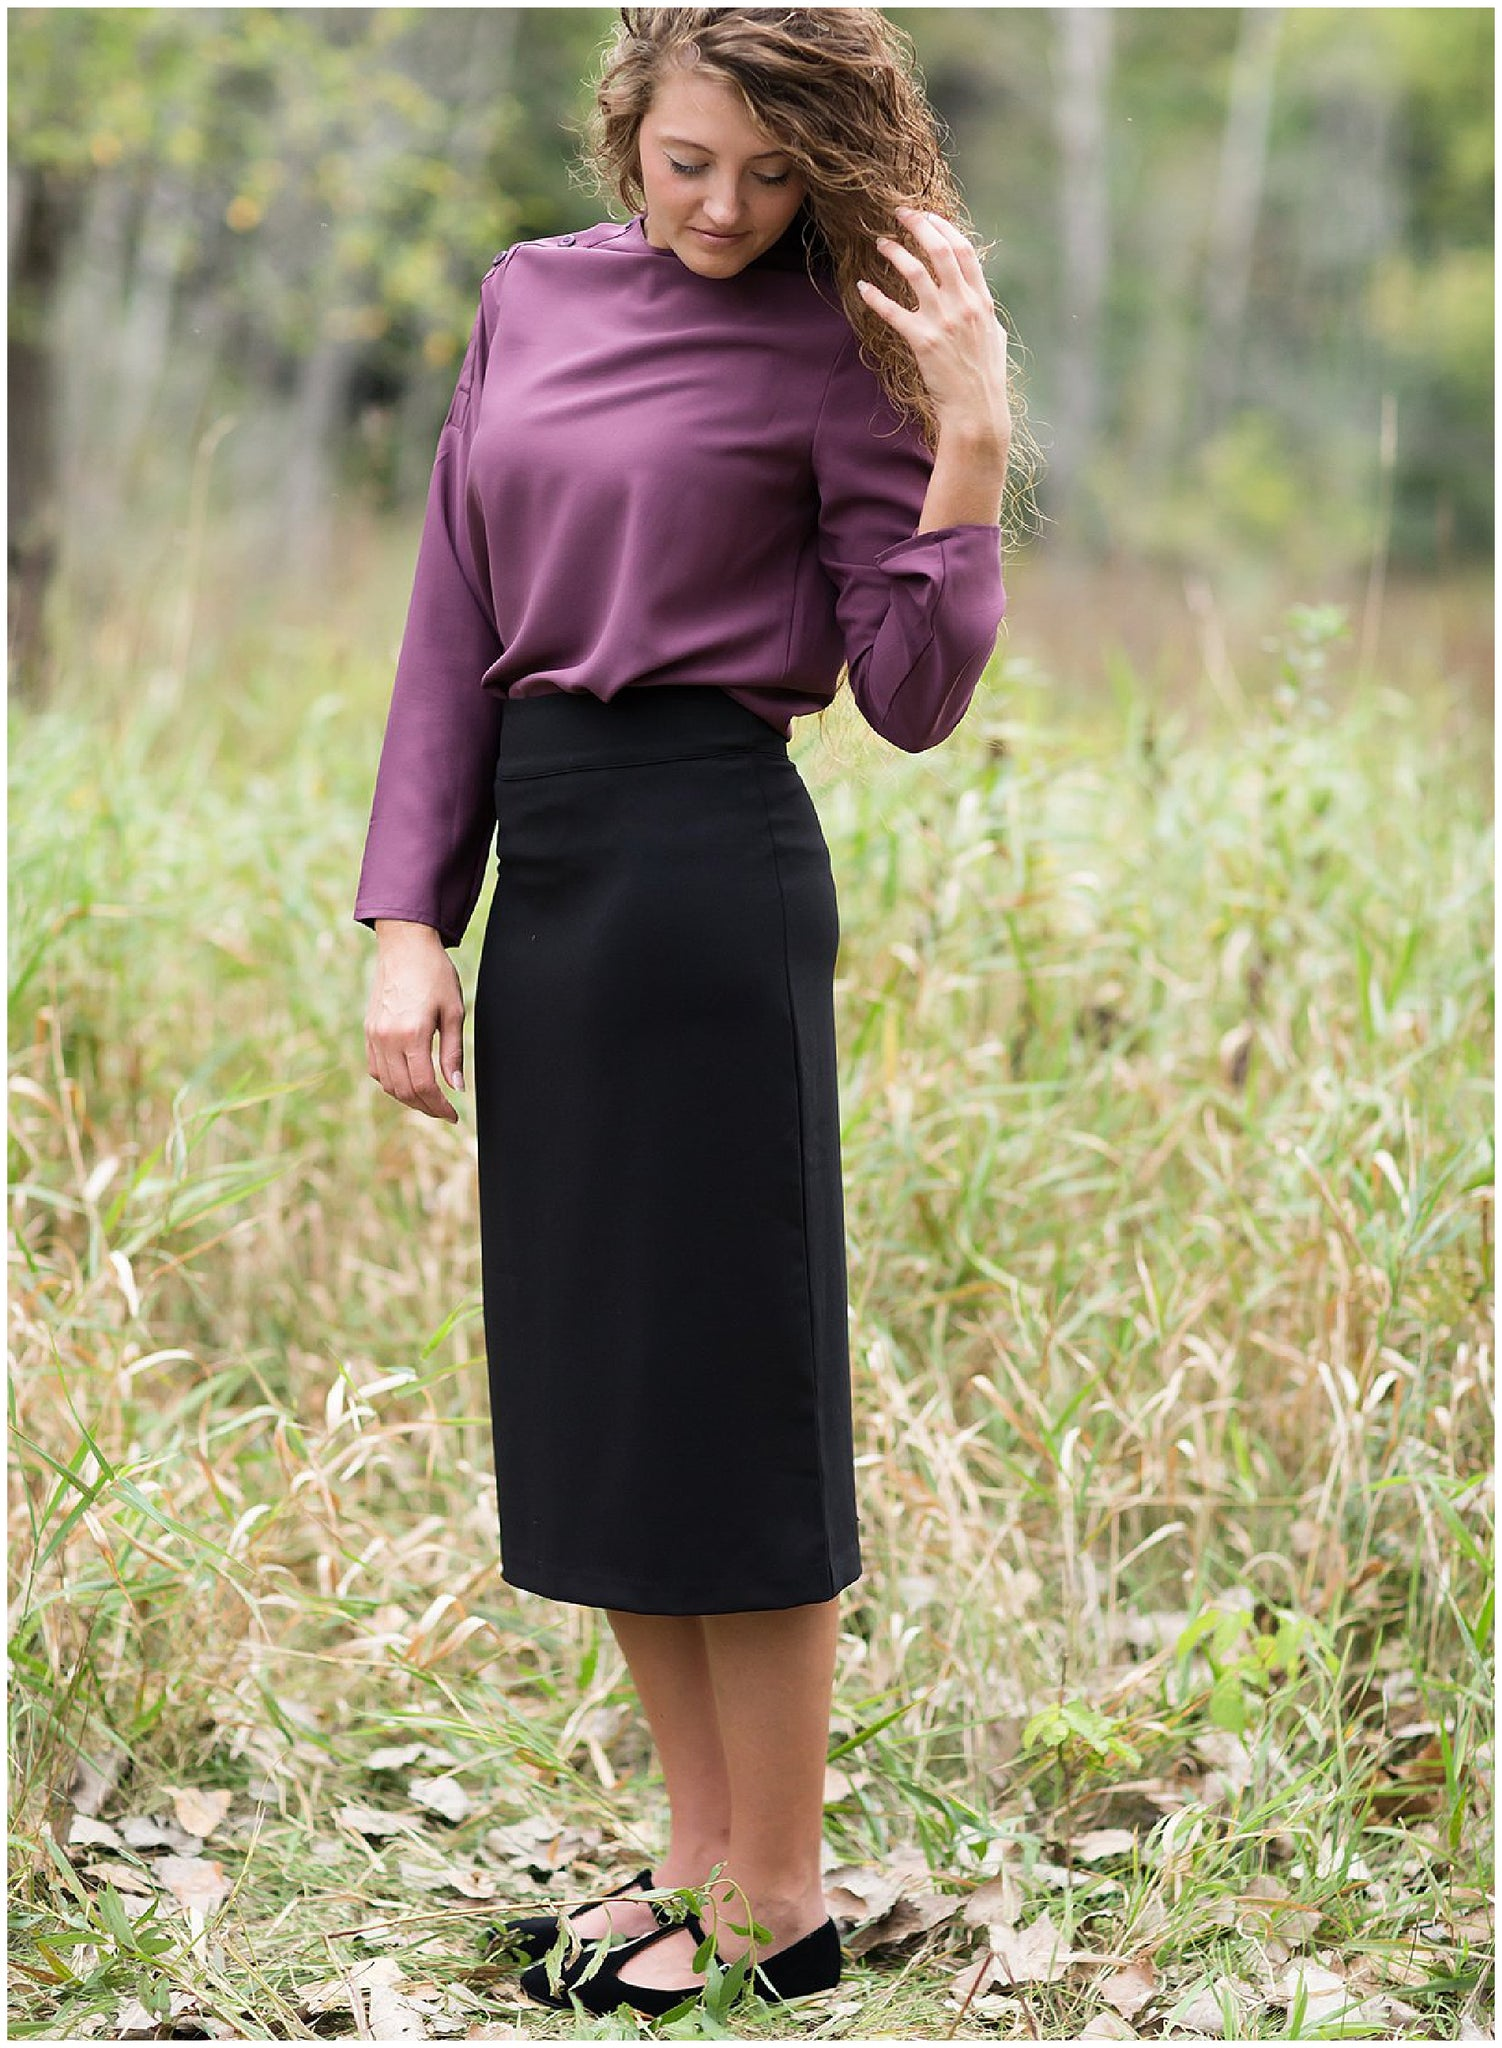 Modest Classic Black Skirt